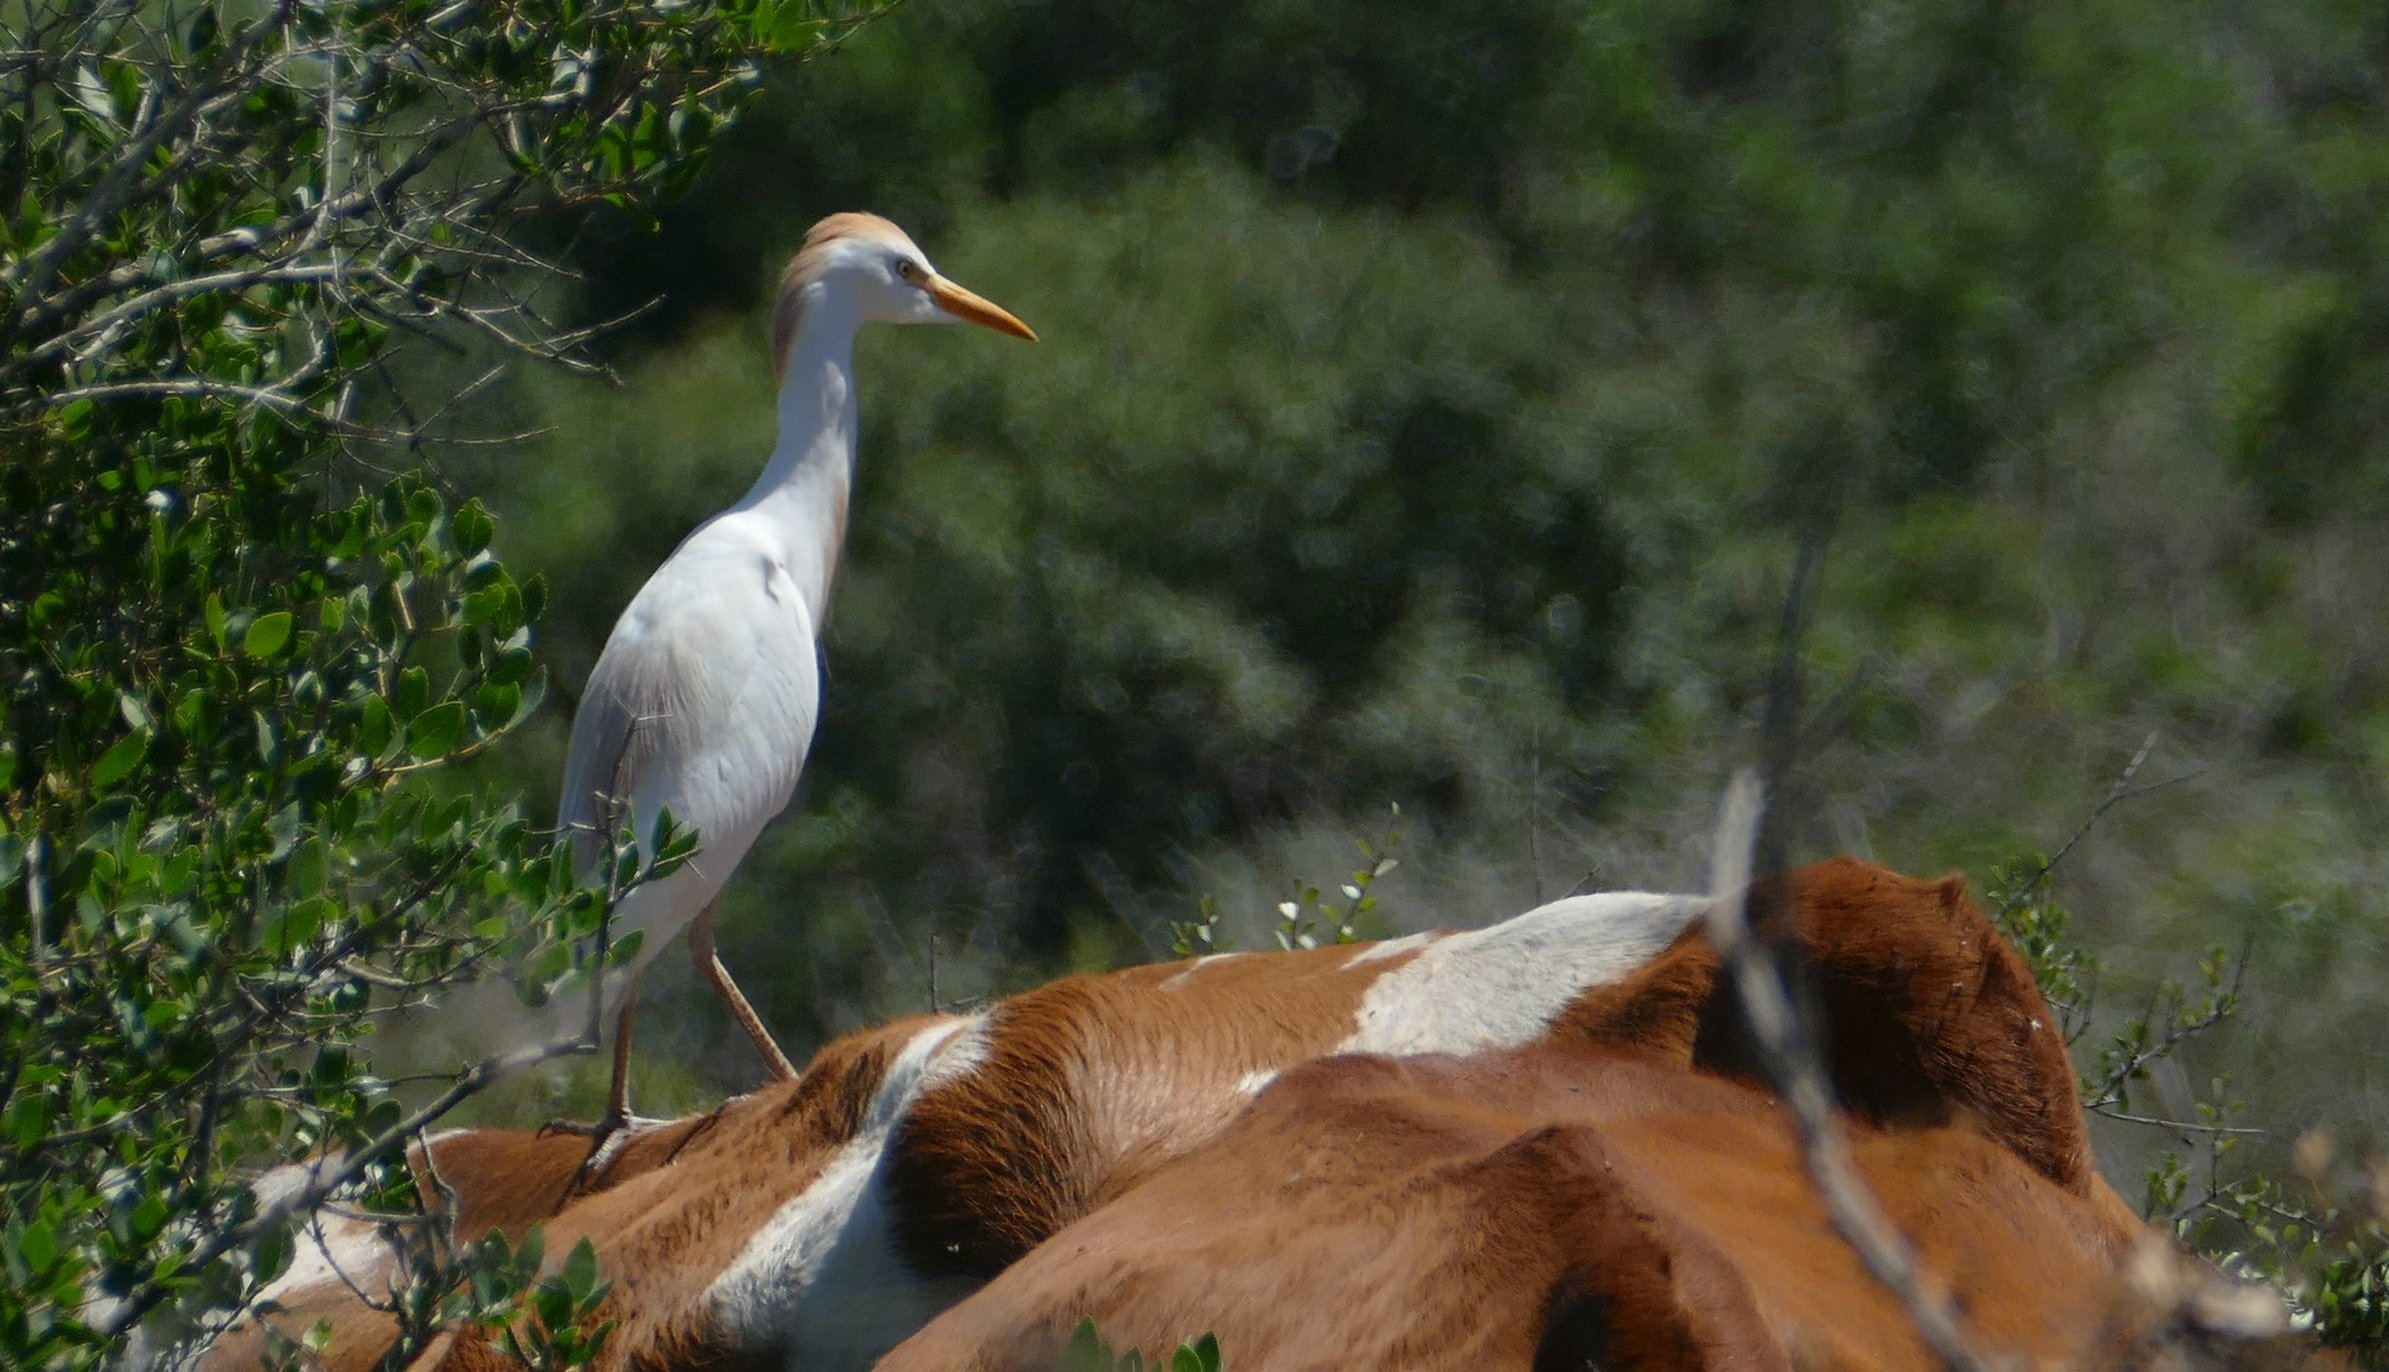 Cattle-Egret-foraging-from-the-back-of-a-cow-Ramat-Hanadiv-May-2017-aspect-ratio-x